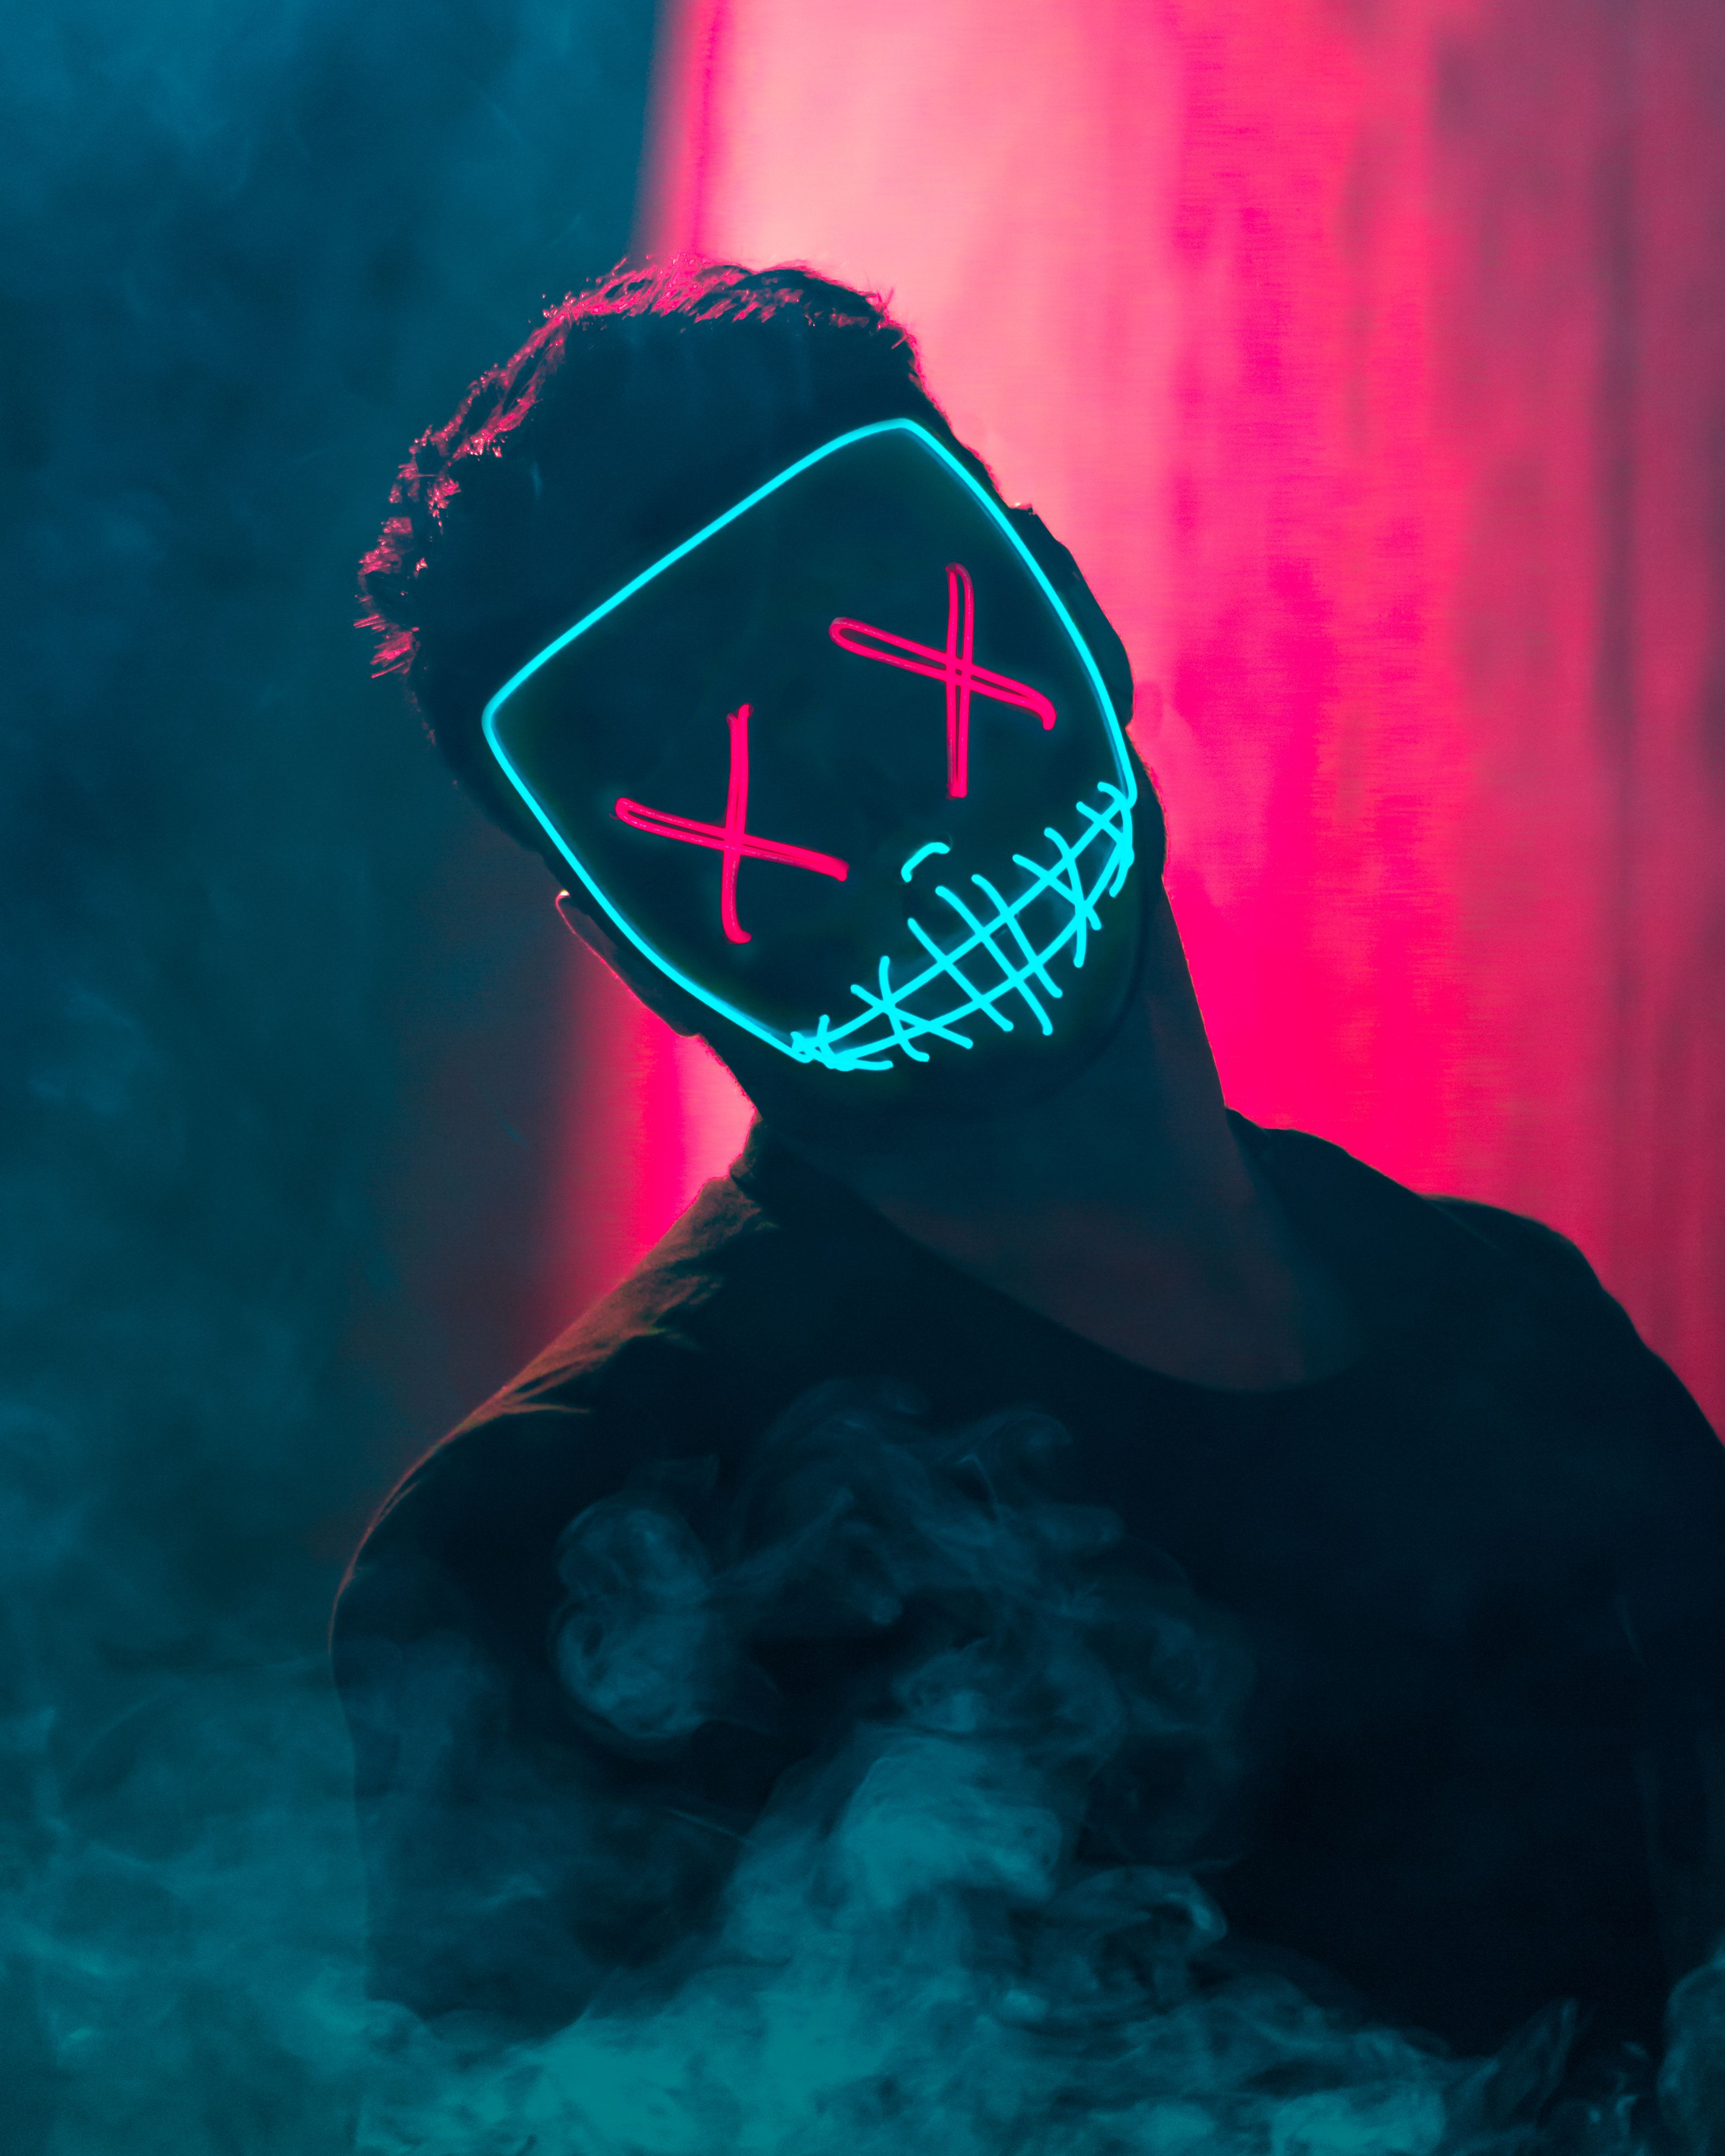 Mask The Purge Purge Mask Pablo Pic O Wallpaper Backgrounds Iphone Wallpaper Tumblr